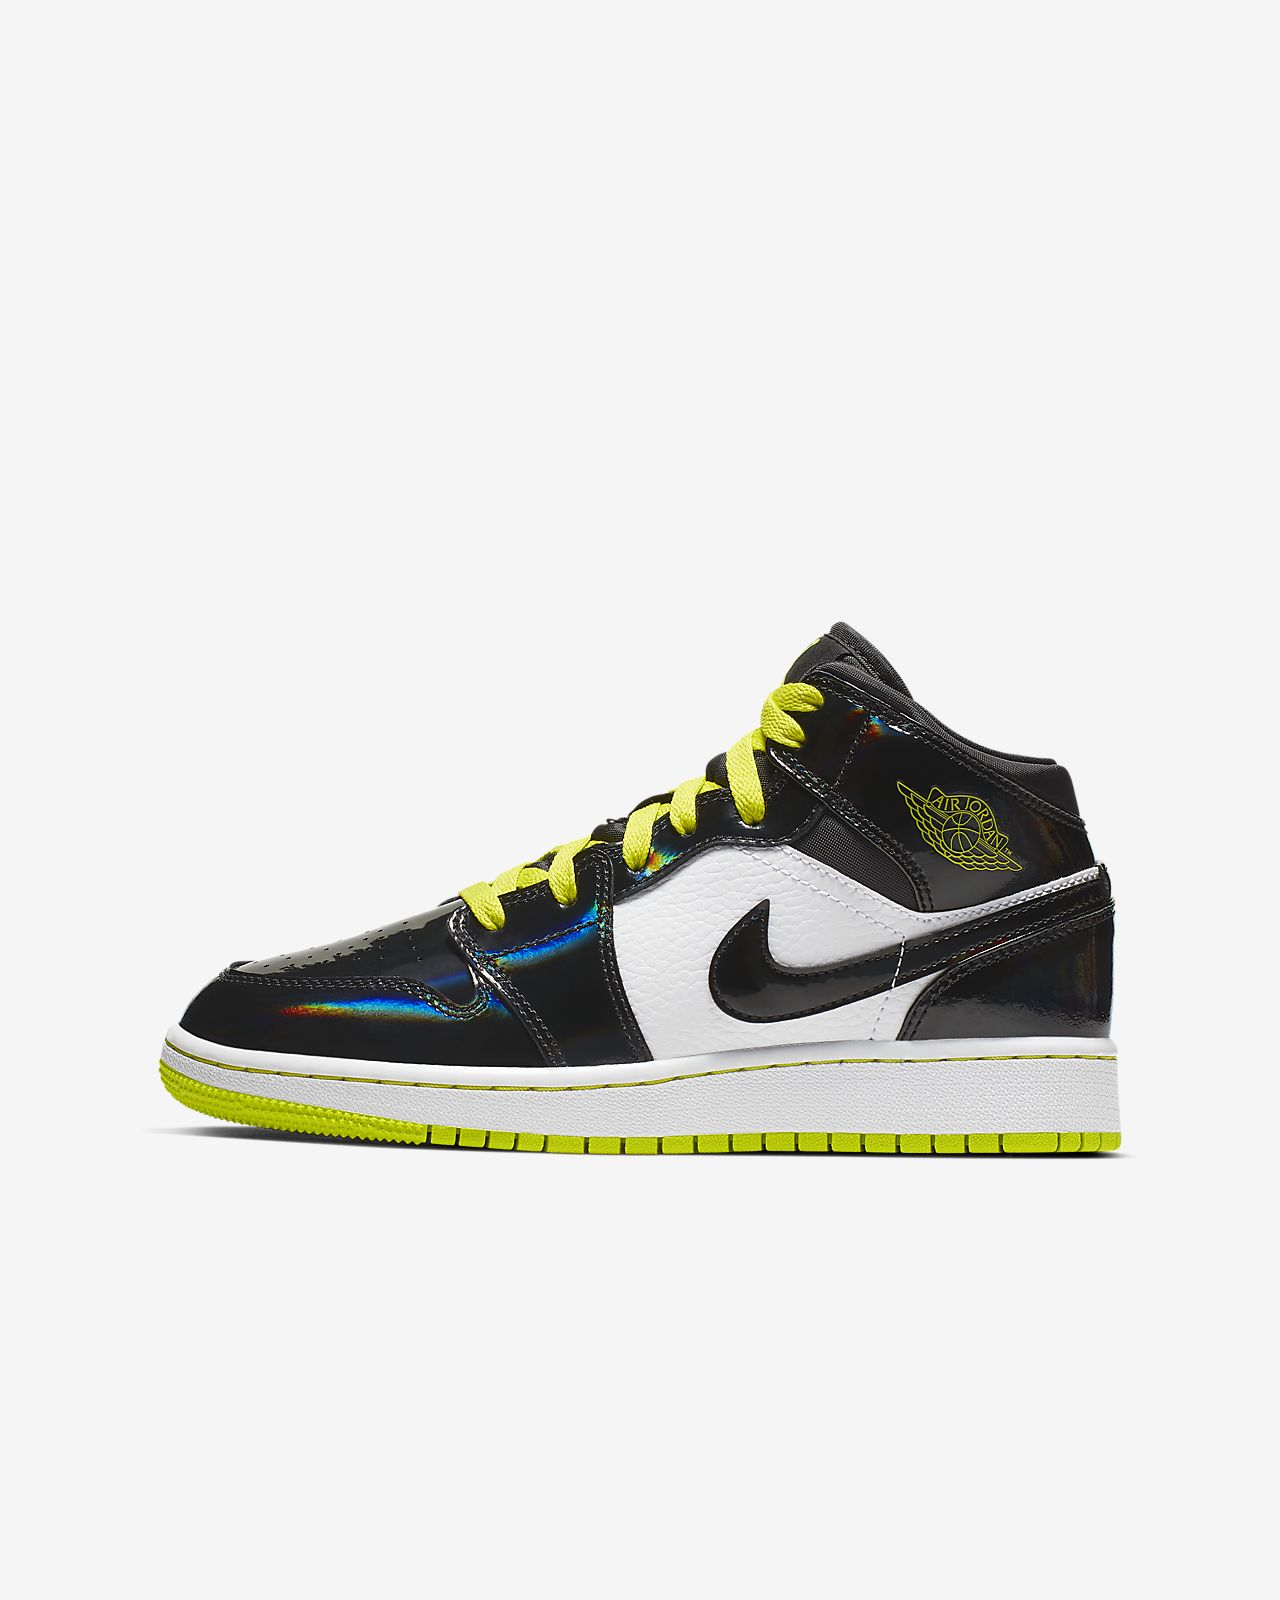 Air Jordan 1 Mid SE Big Kids' Shoe